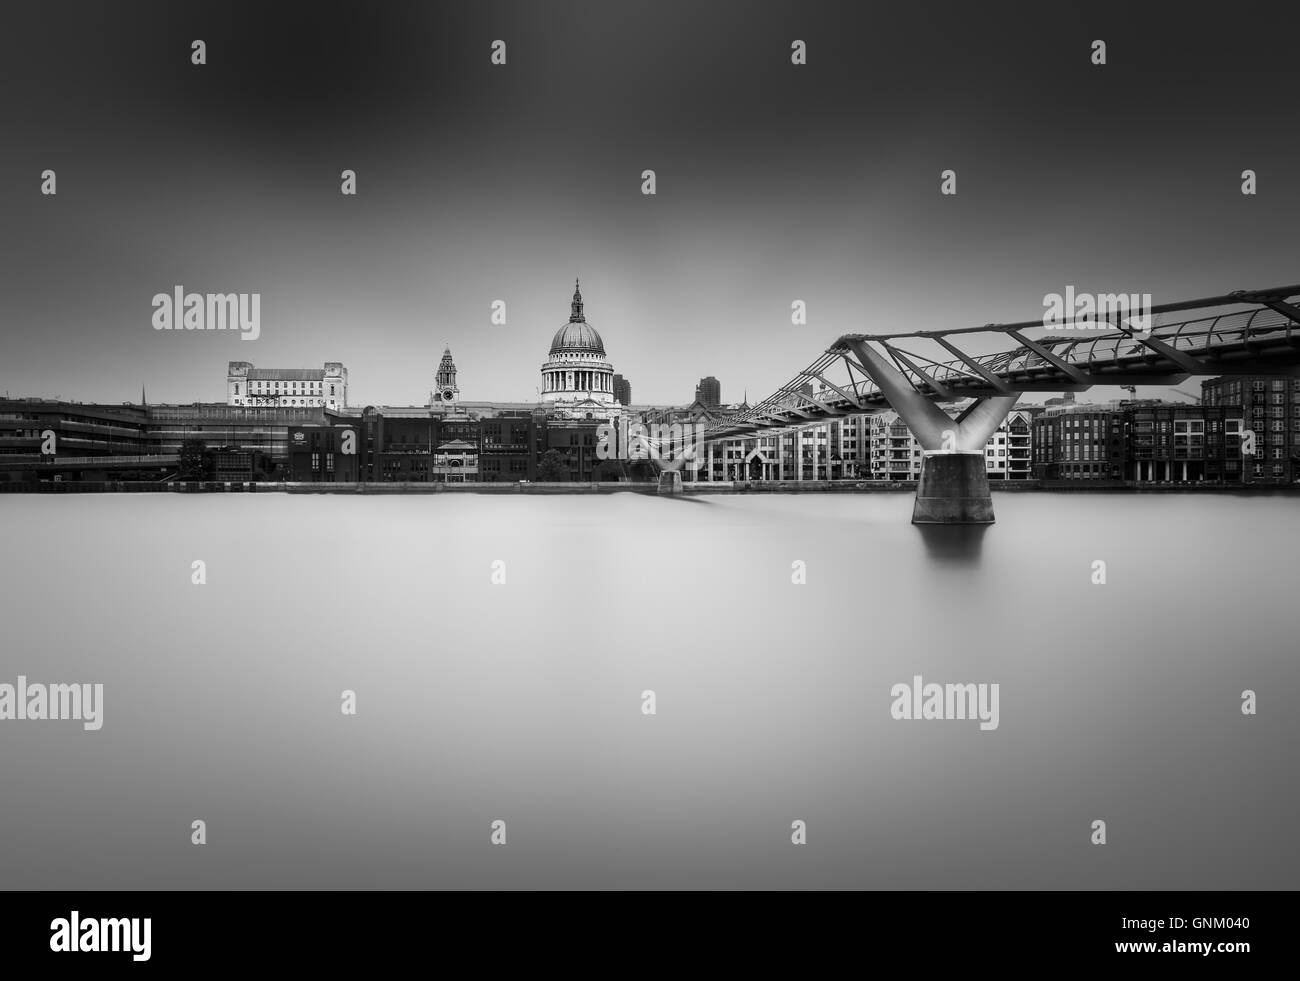 St. Paul's Cathedral, the Millenium Bridge and the Thames at high tide on a cloudy day. - Stock Image